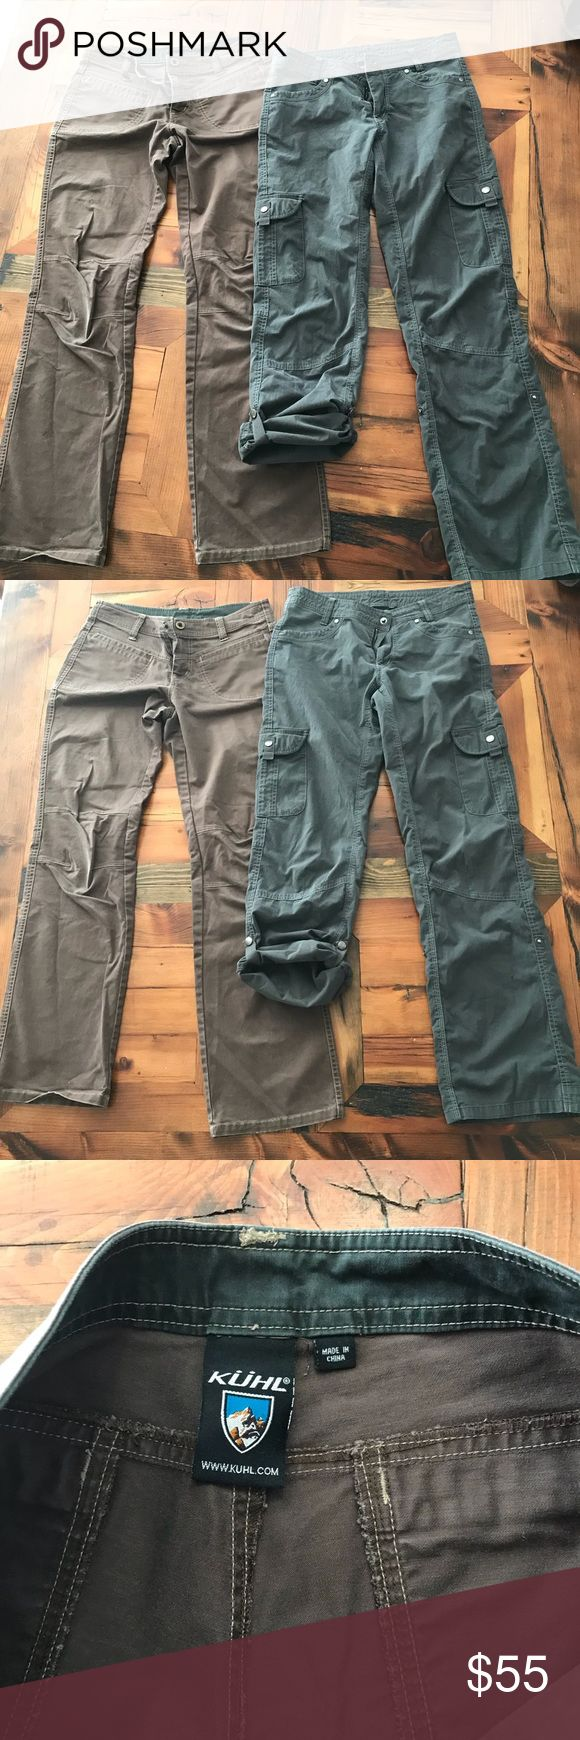 KUHL Camping Pants ⛺️ bundle KUHL camping pants Born in the Mountains ⛰  Woman size 6 Used condition but still have a lot of life left These are high quality pants Brown pants are 83% cotton 15% Lyocell 2% spandex remind me of tin pants in a way Gray pants are 68% cotton 29% nylon 3% spandex Brow pants have pitch stain and a little wear at knees Ask with ?'s sold as is  Also have a size 4 on a different listing on my page Kuhl Pants